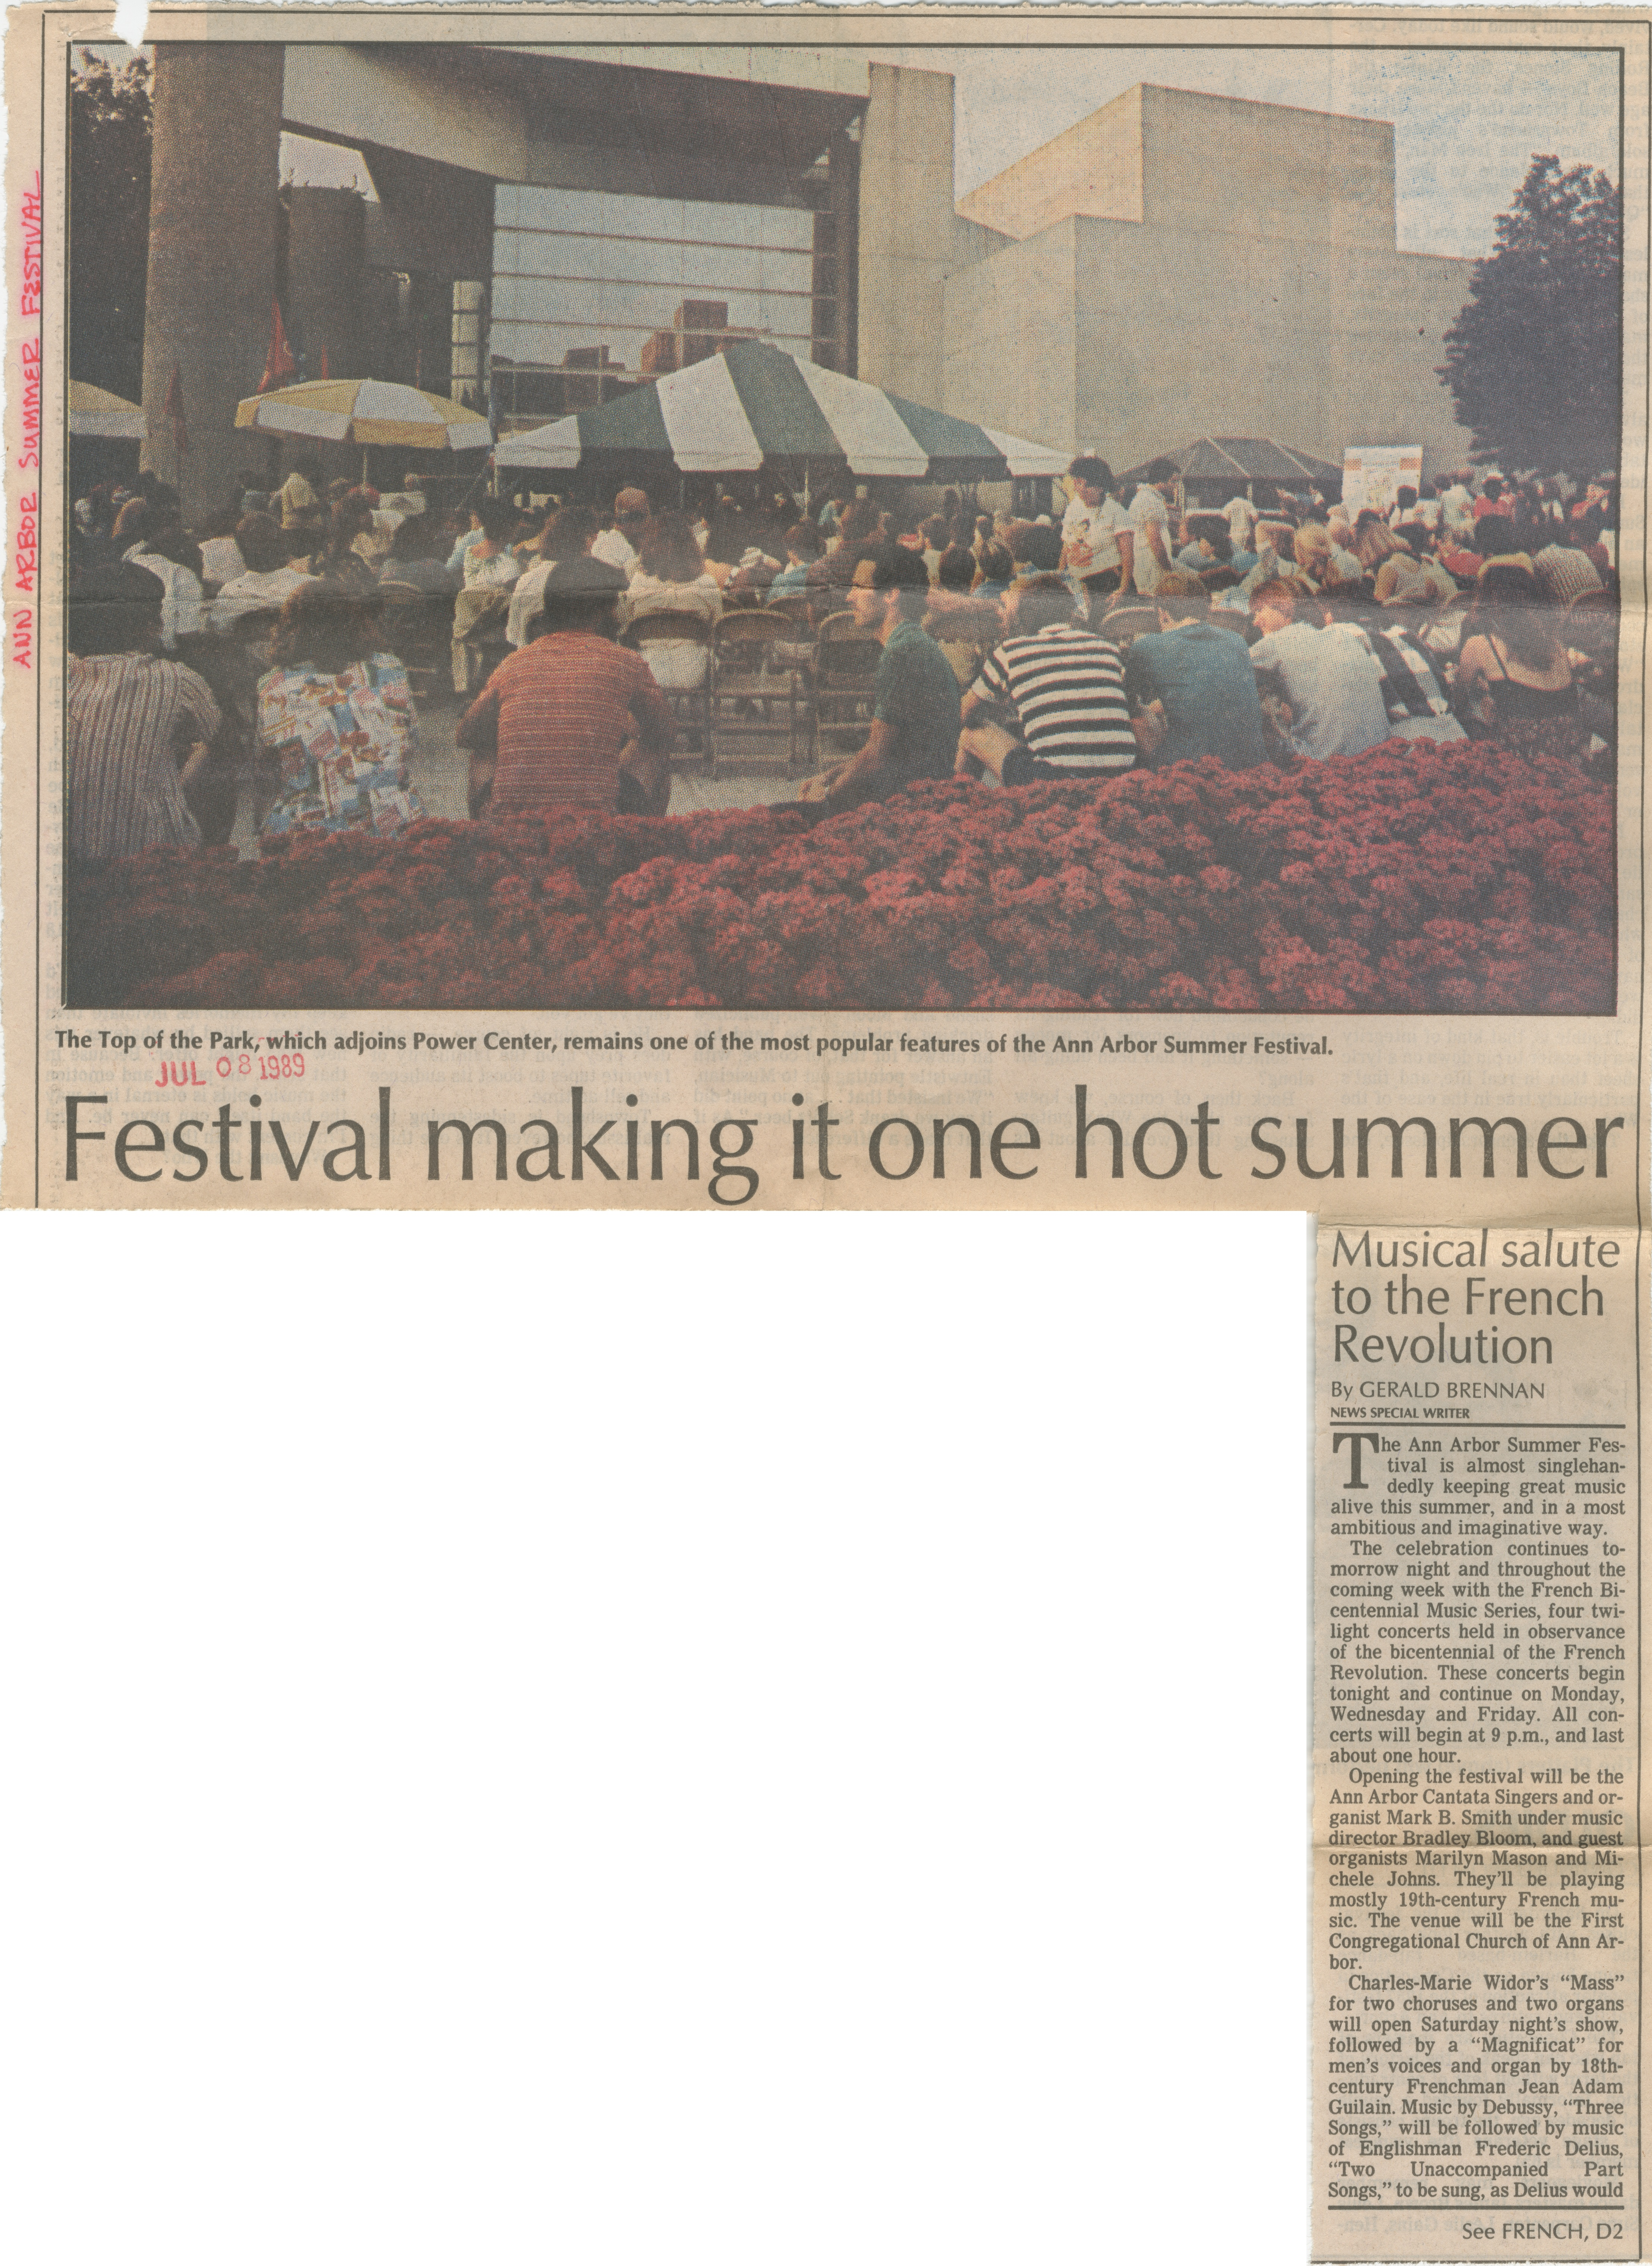 Festival making it one hot summer image